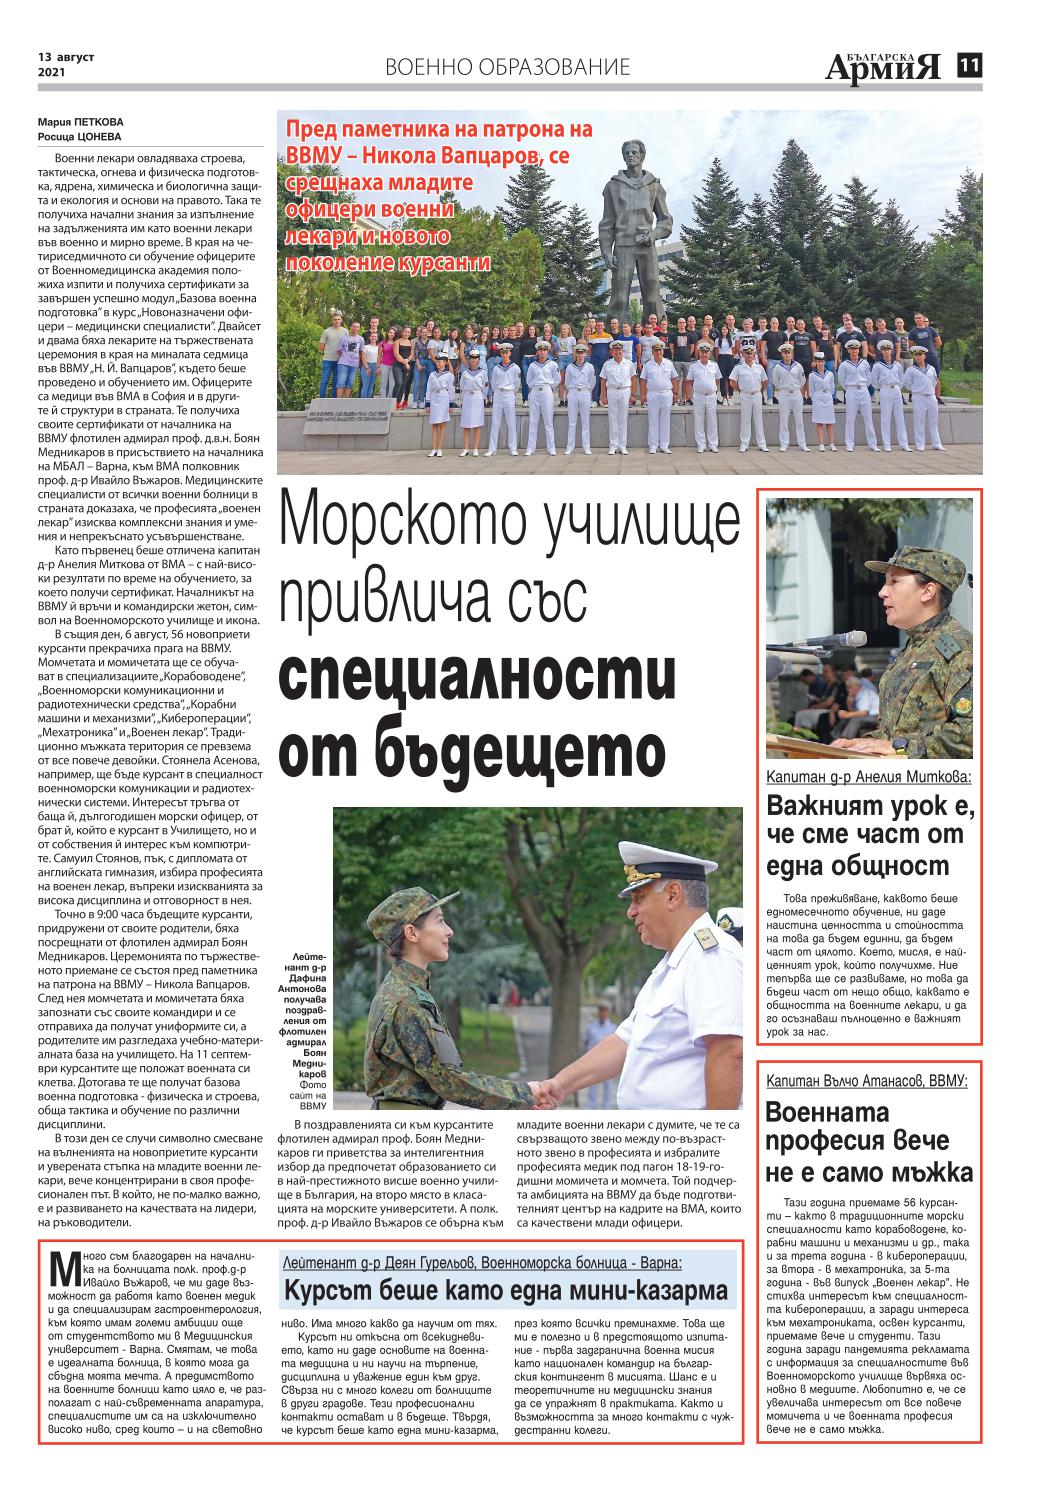 https://armymedia.bg/wp-content/uploads/2021/08/11.page1_-1.jpg